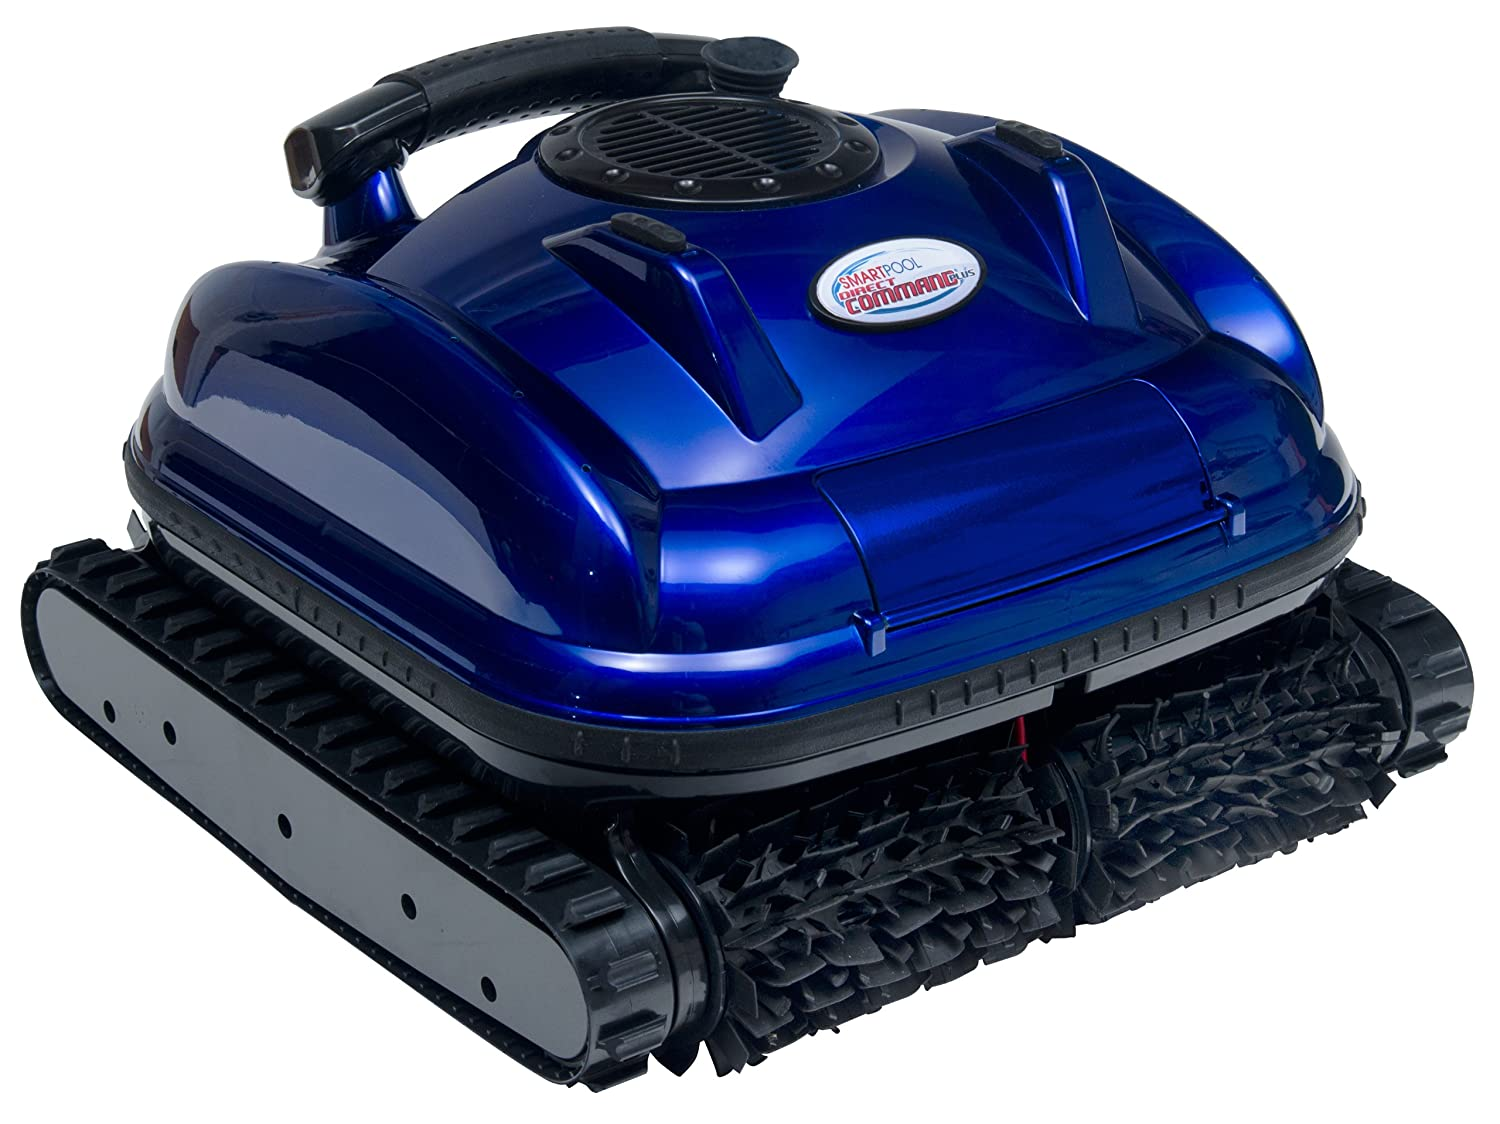 Top 10 best automatic pool cleaner reviews list and for Best robotic pool cleaner 2016